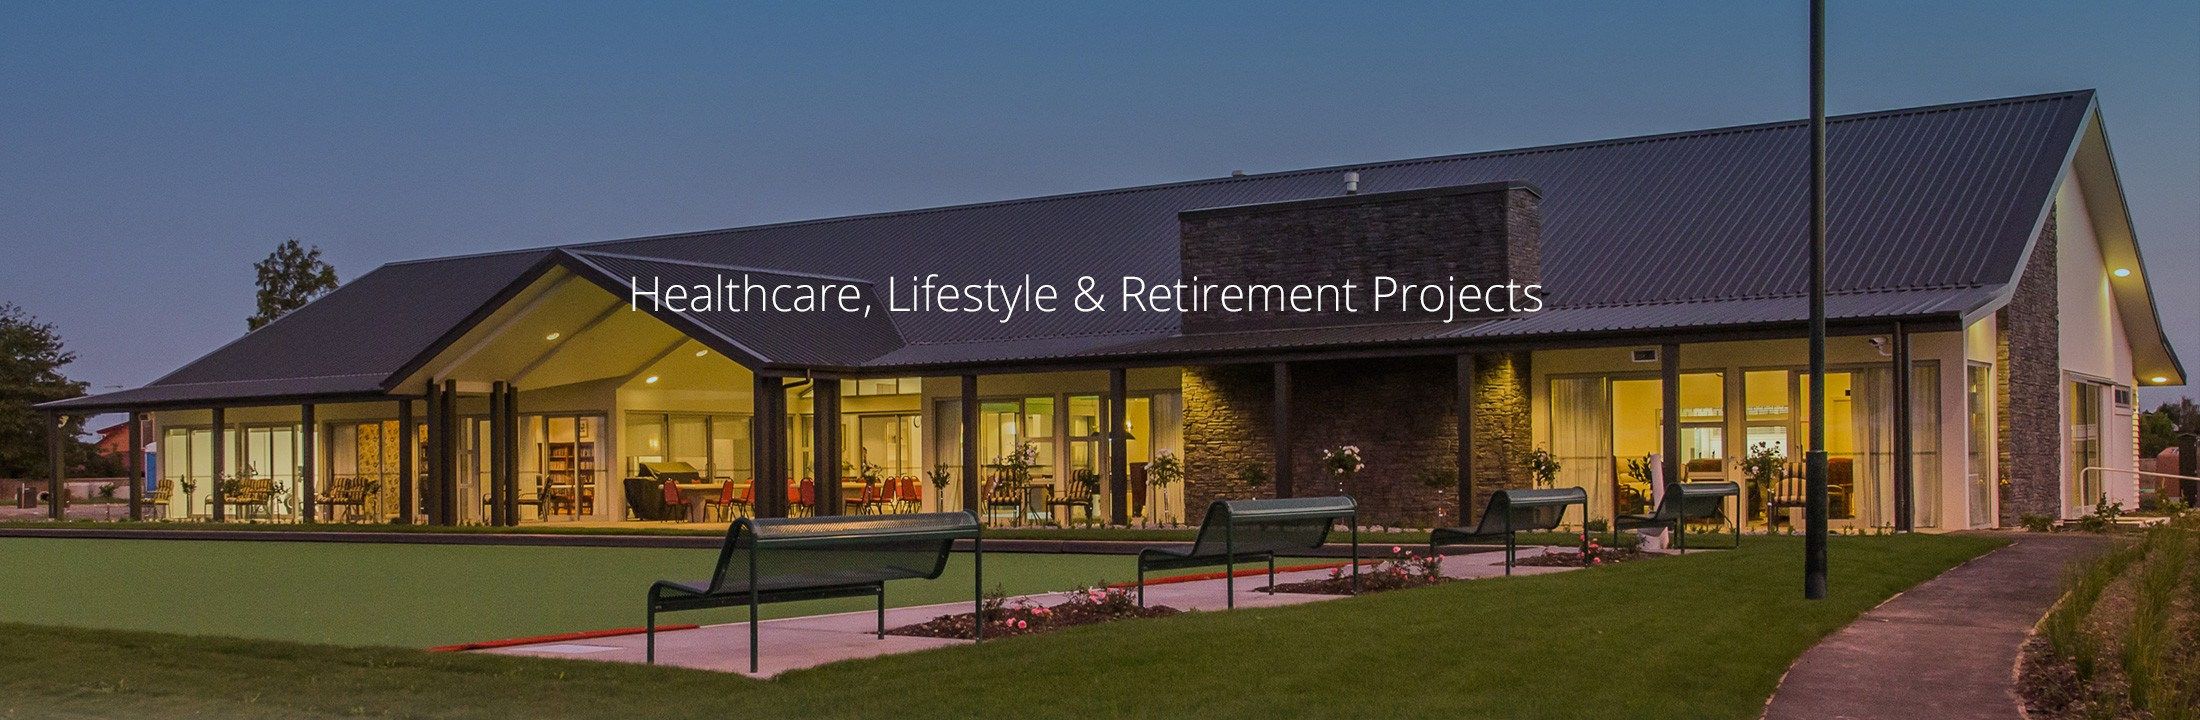 Lochlea Healthcare Lifestyle resort HPA Group New Zealand